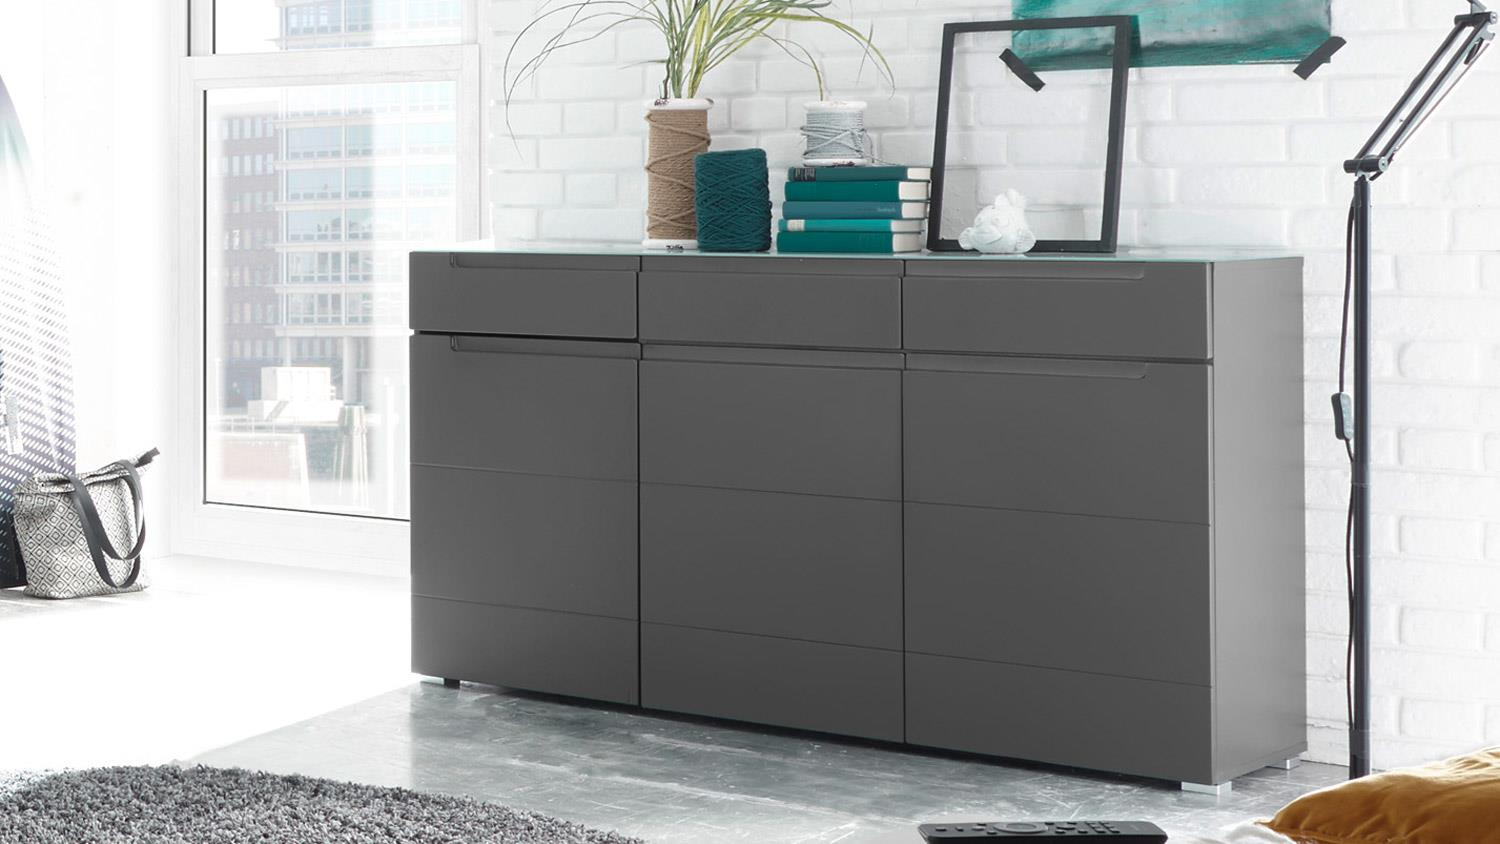 sideboard tiga in mdf grau matt tiefzieh mit satinierter. Black Bedroom Furniture Sets. Home Design Ideas